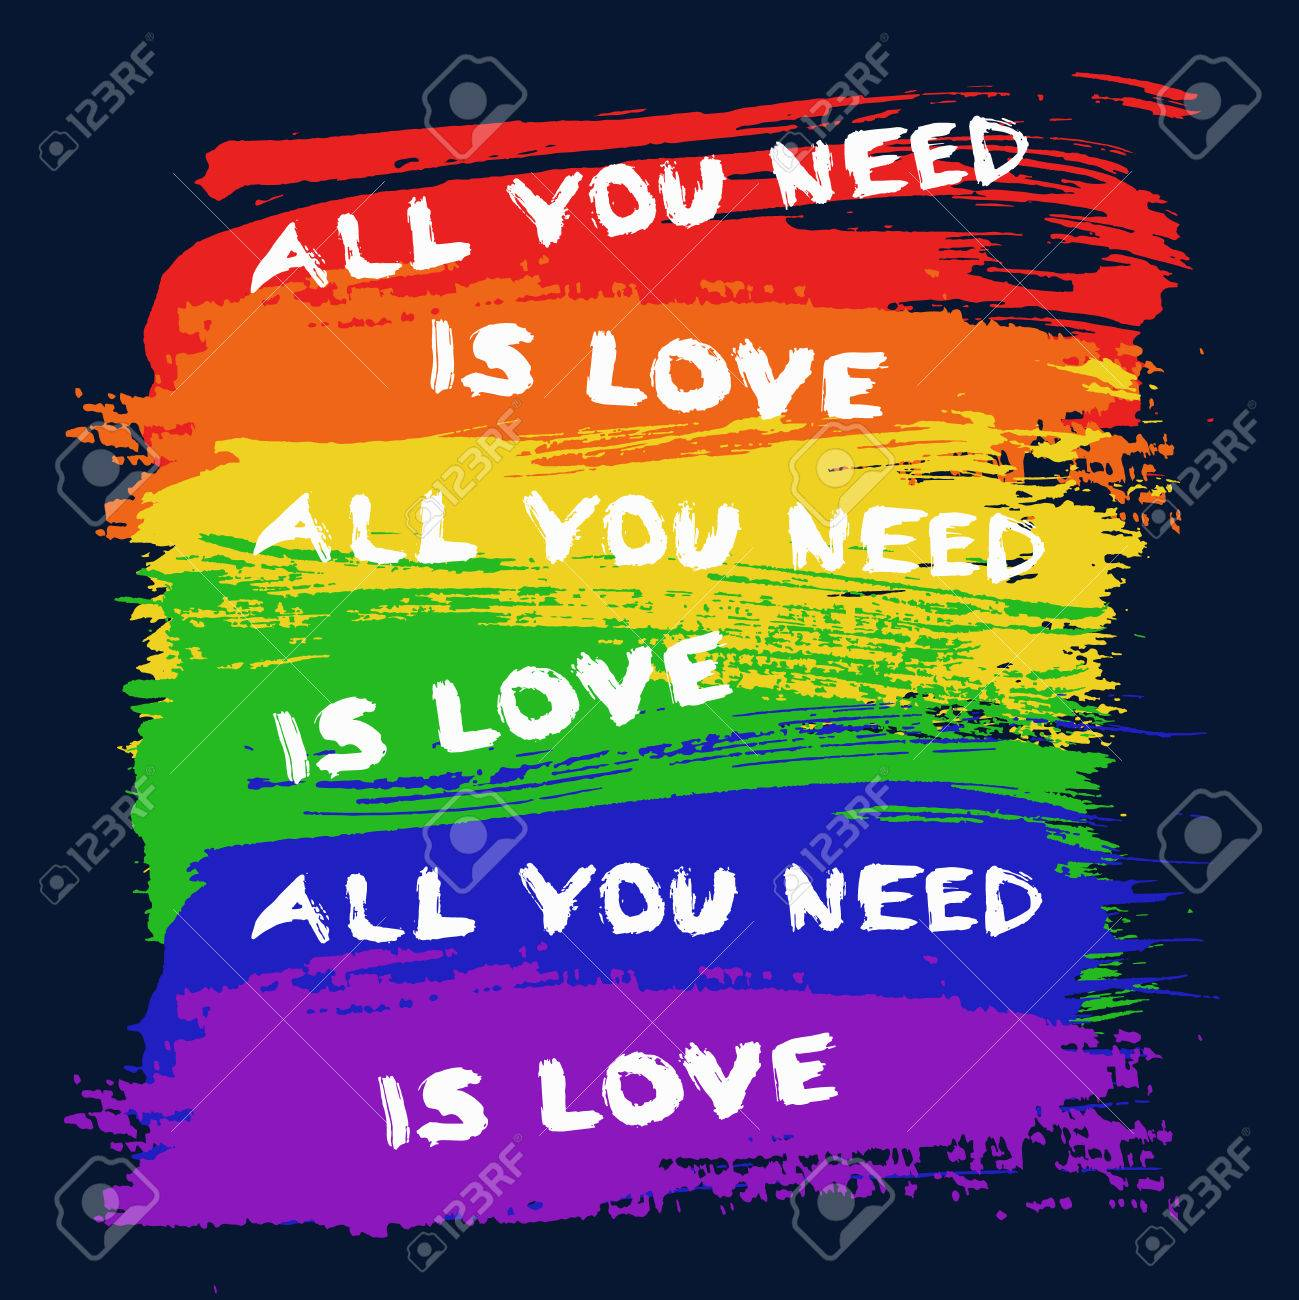 Stylized Gay Flag From Brush Strokes And Slogan All You Need Is Love